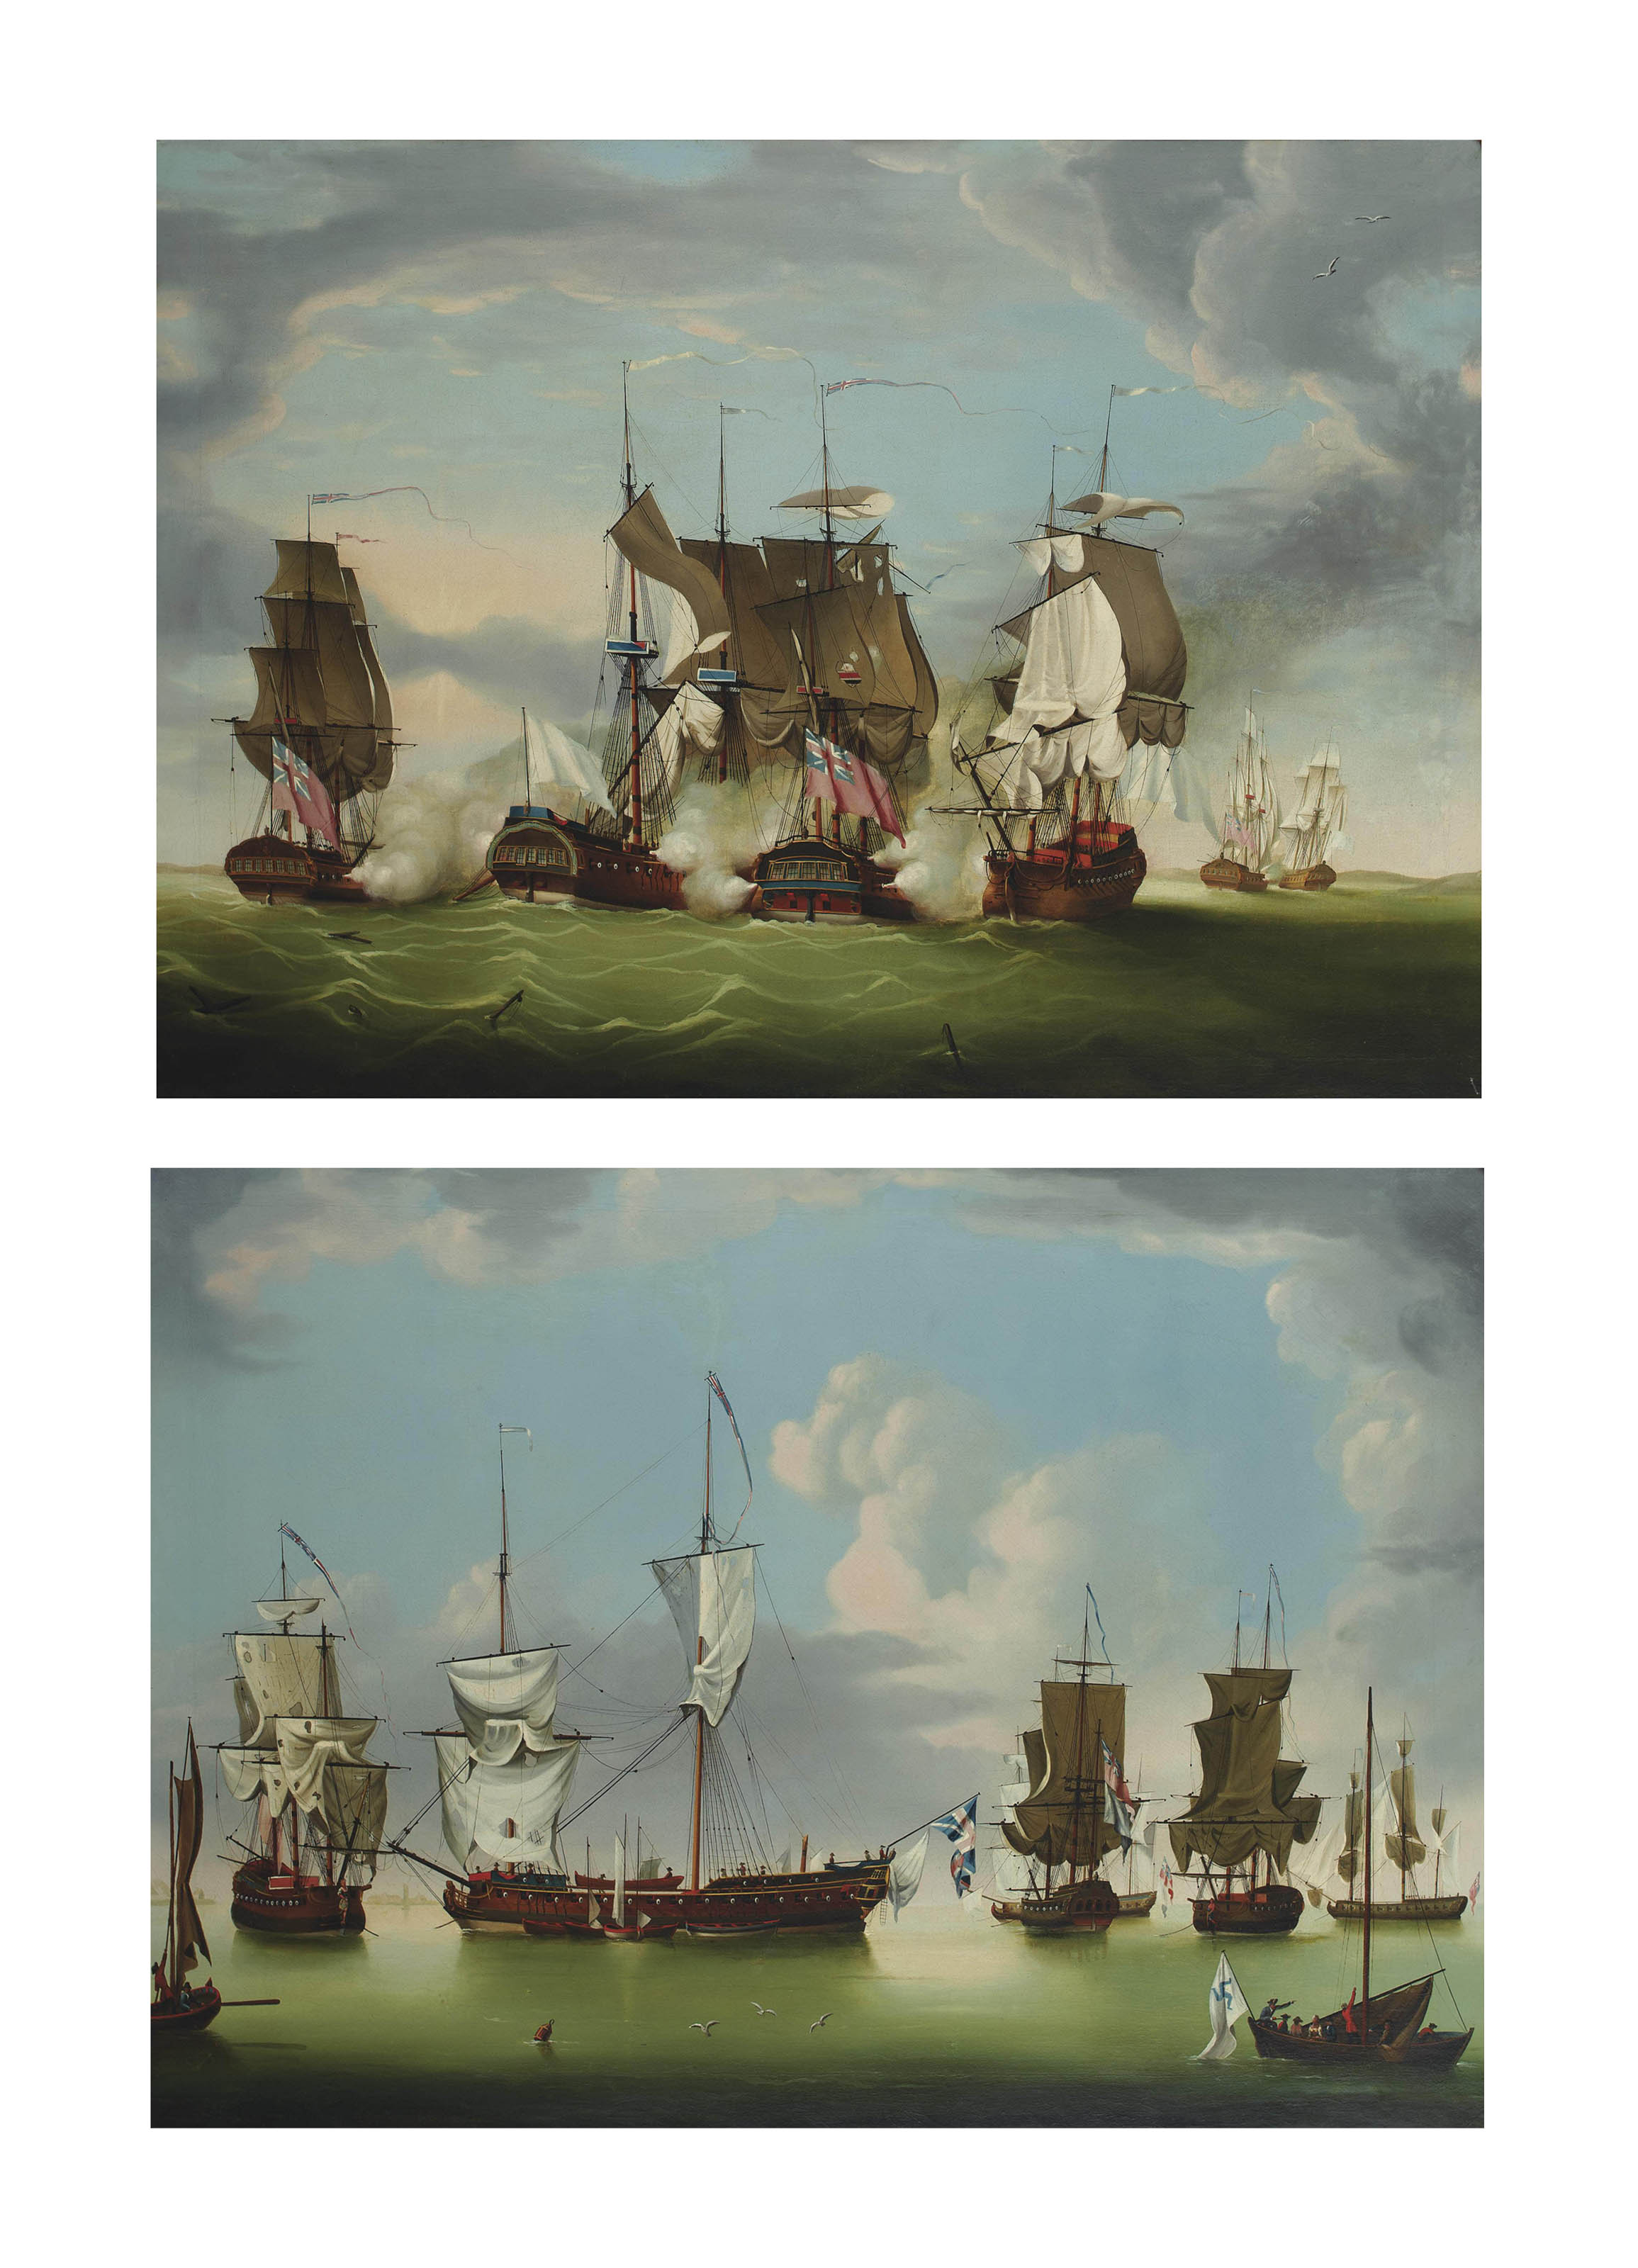 Defeating Thurot: The gallant action off the Isle of Man, 28th February 1760; and After the action, the victorious English frigates with their French prizes Maréchal de Belle-Isle, Terpischore and Blonde (both illustrated)